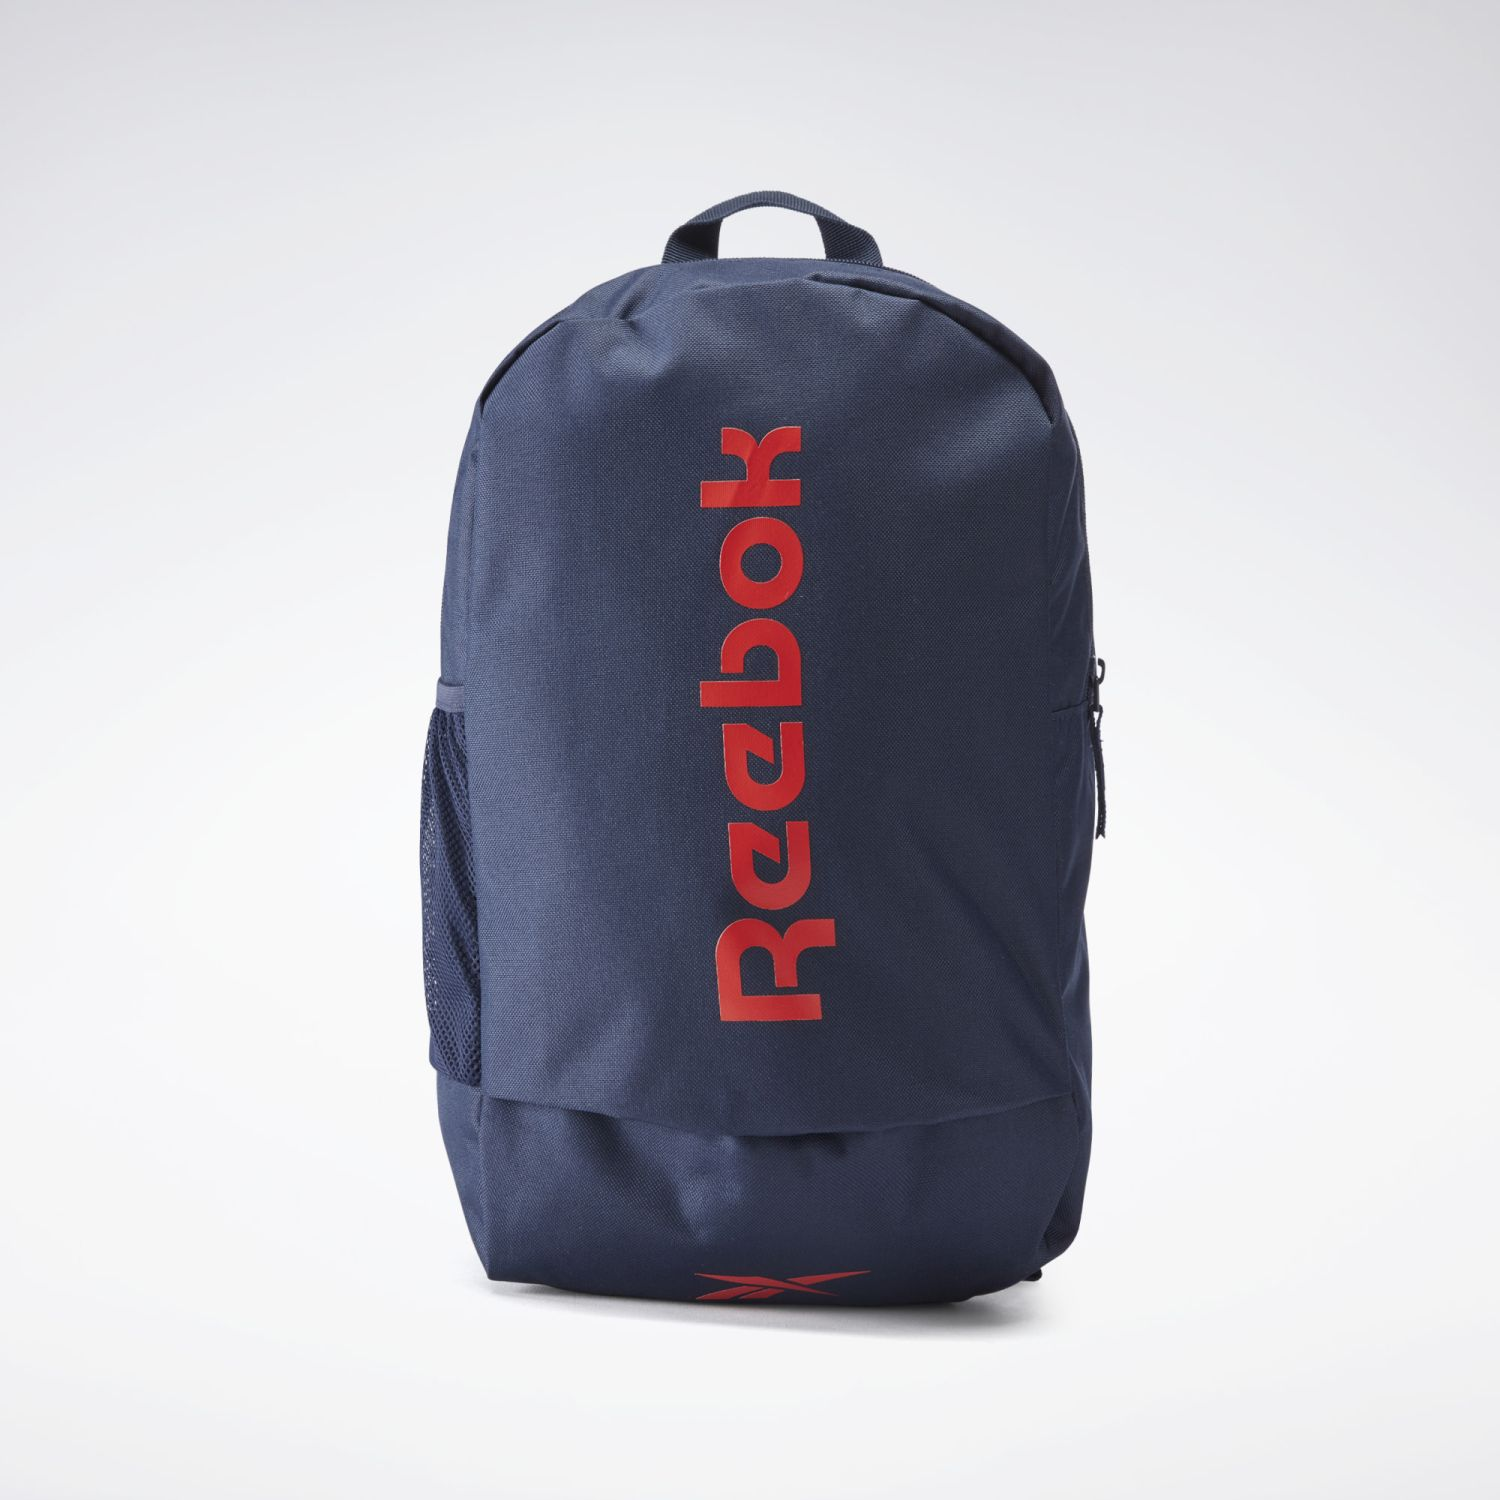 Reebok Act Core Ll Bkp M Azul / rojo Mochilas Multipropósitos